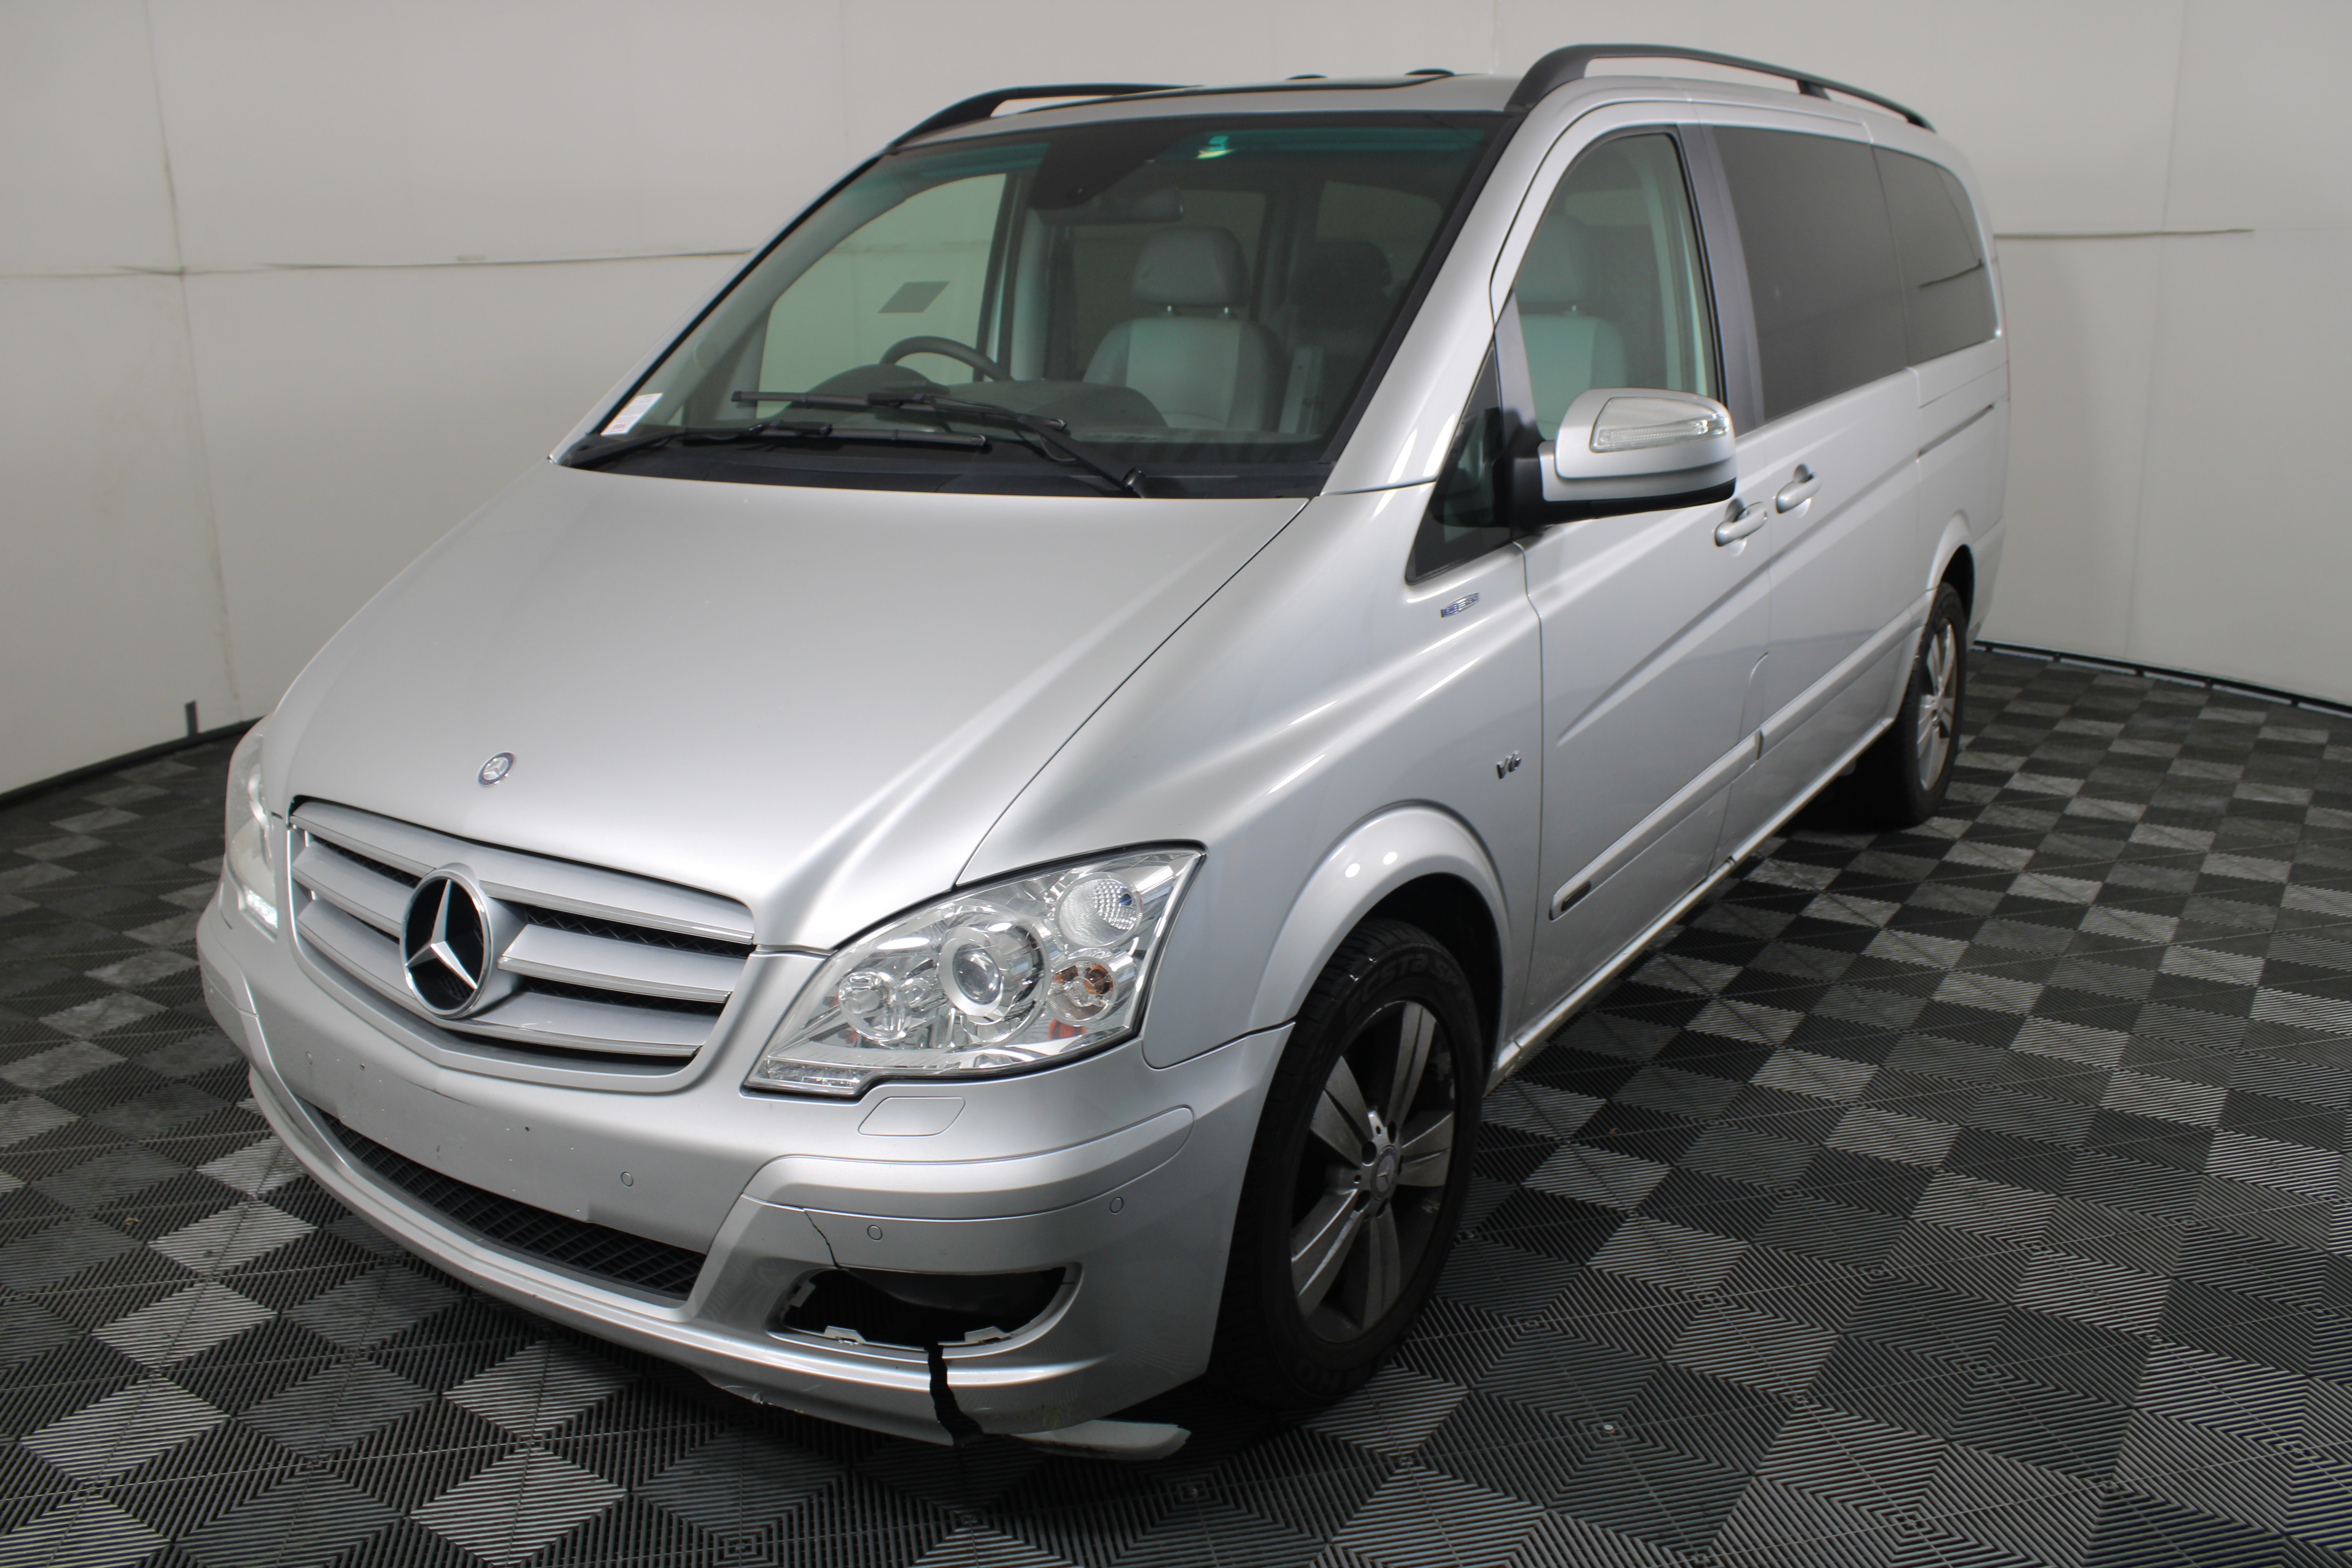 Mercedes-Benz Viano Turbo Diesel Automatic 7 Seats Van